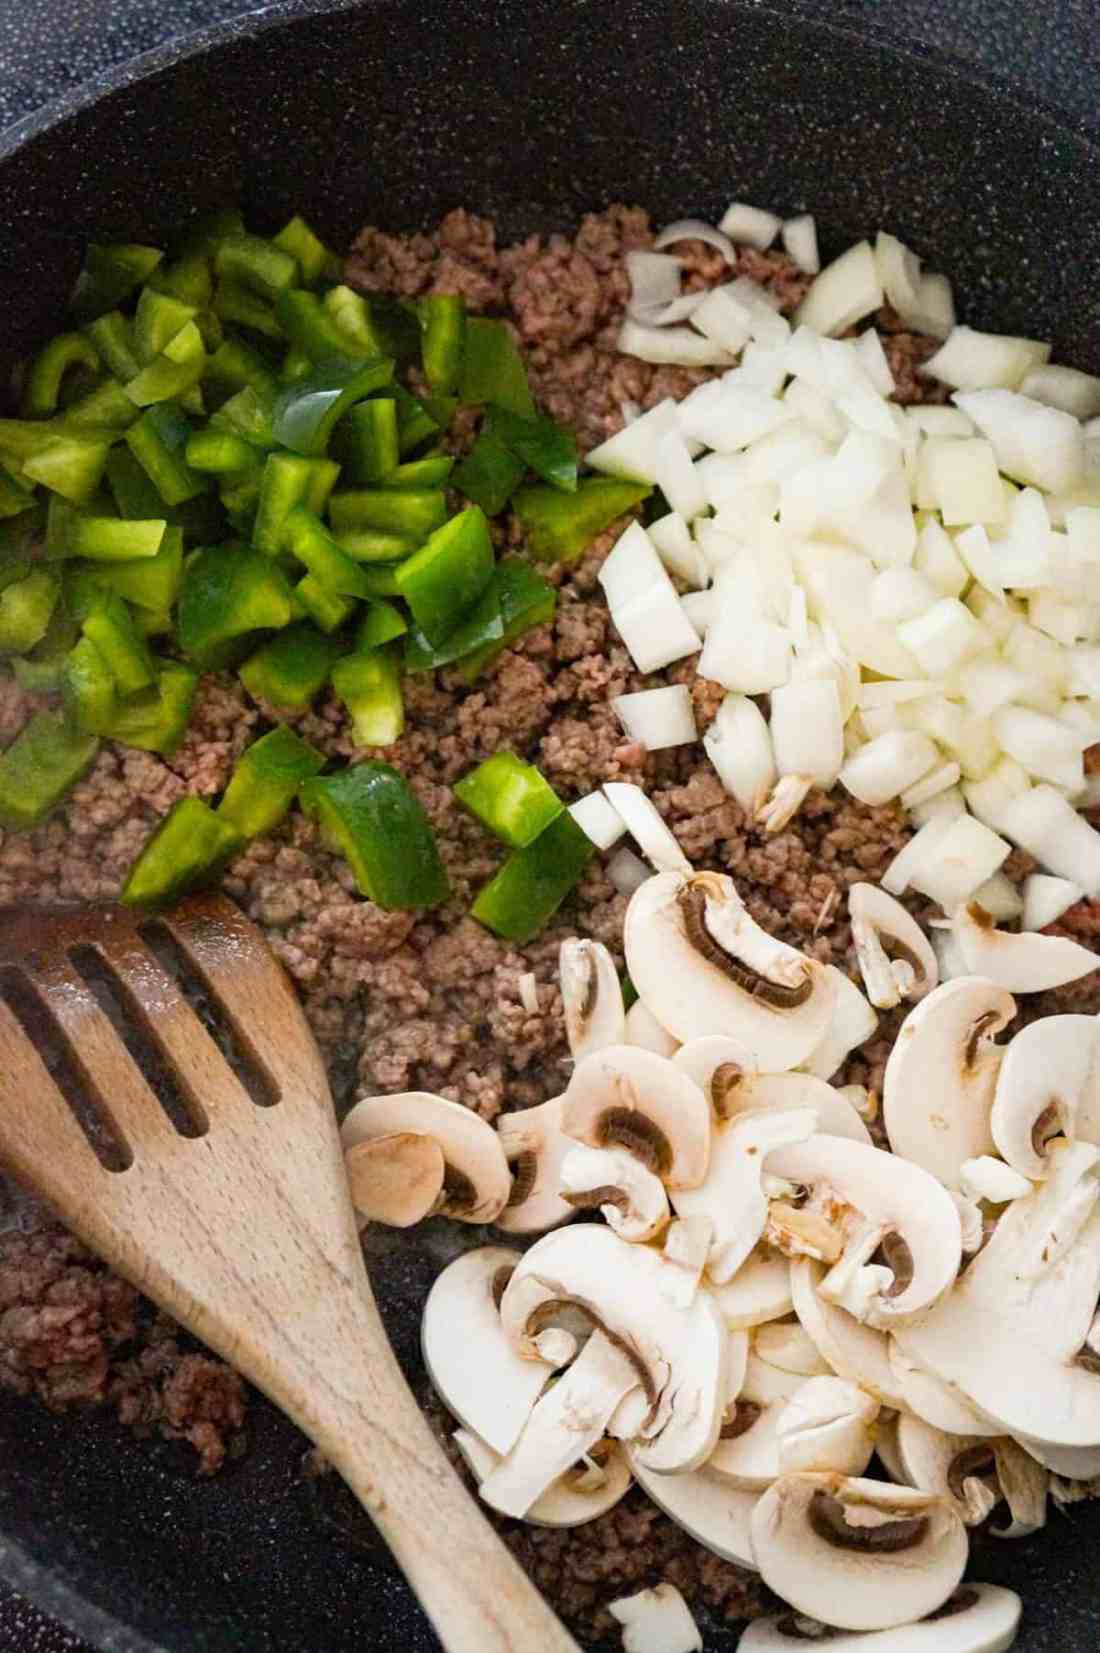 diced green pepper, diced yellow onion and sliced mushrooms on top of ground beef in a saute pan